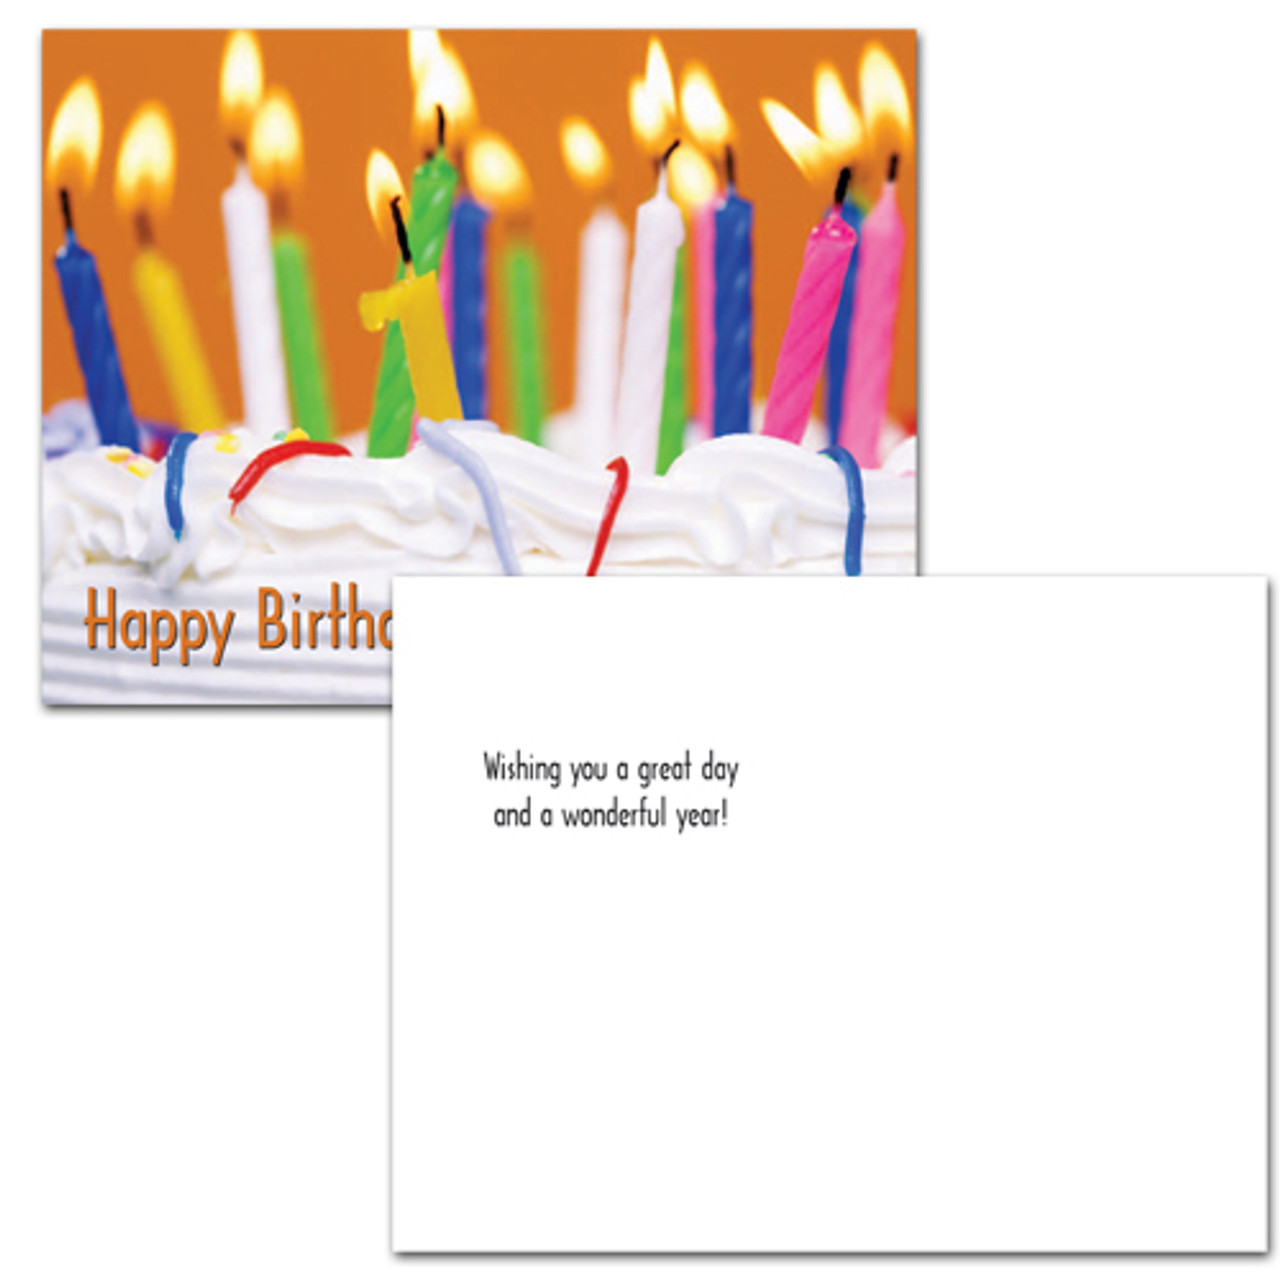 "Birthday postcard - Festive Cake reverse side has the words ""wishing you a good day and a wonderful year"" and space for name, address and a personalized birthday message for business, corporate or school student recipients."